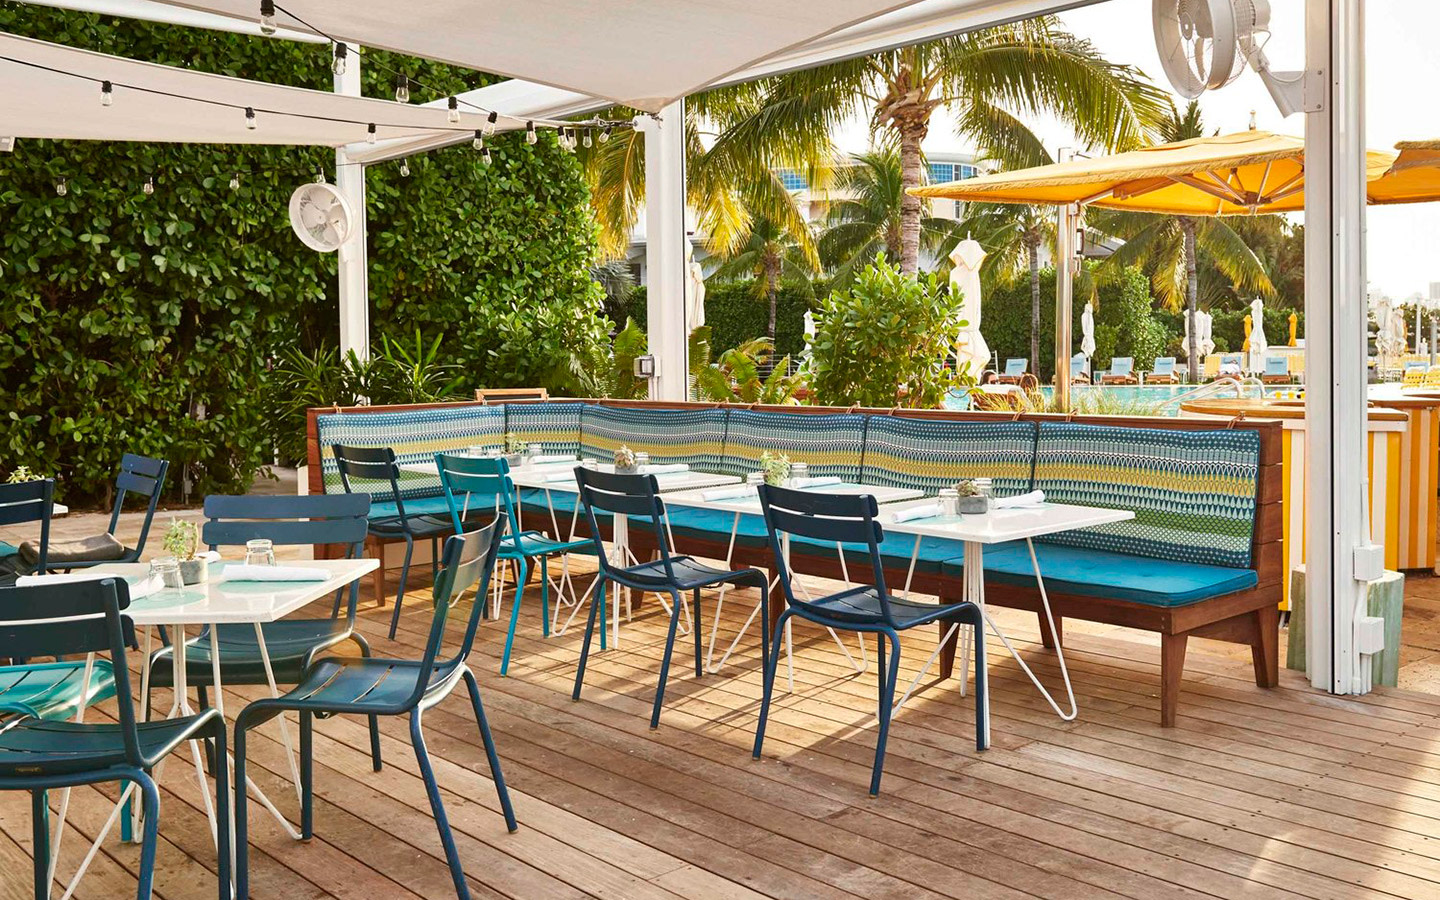 Lido Restaurant and Bayside Grill